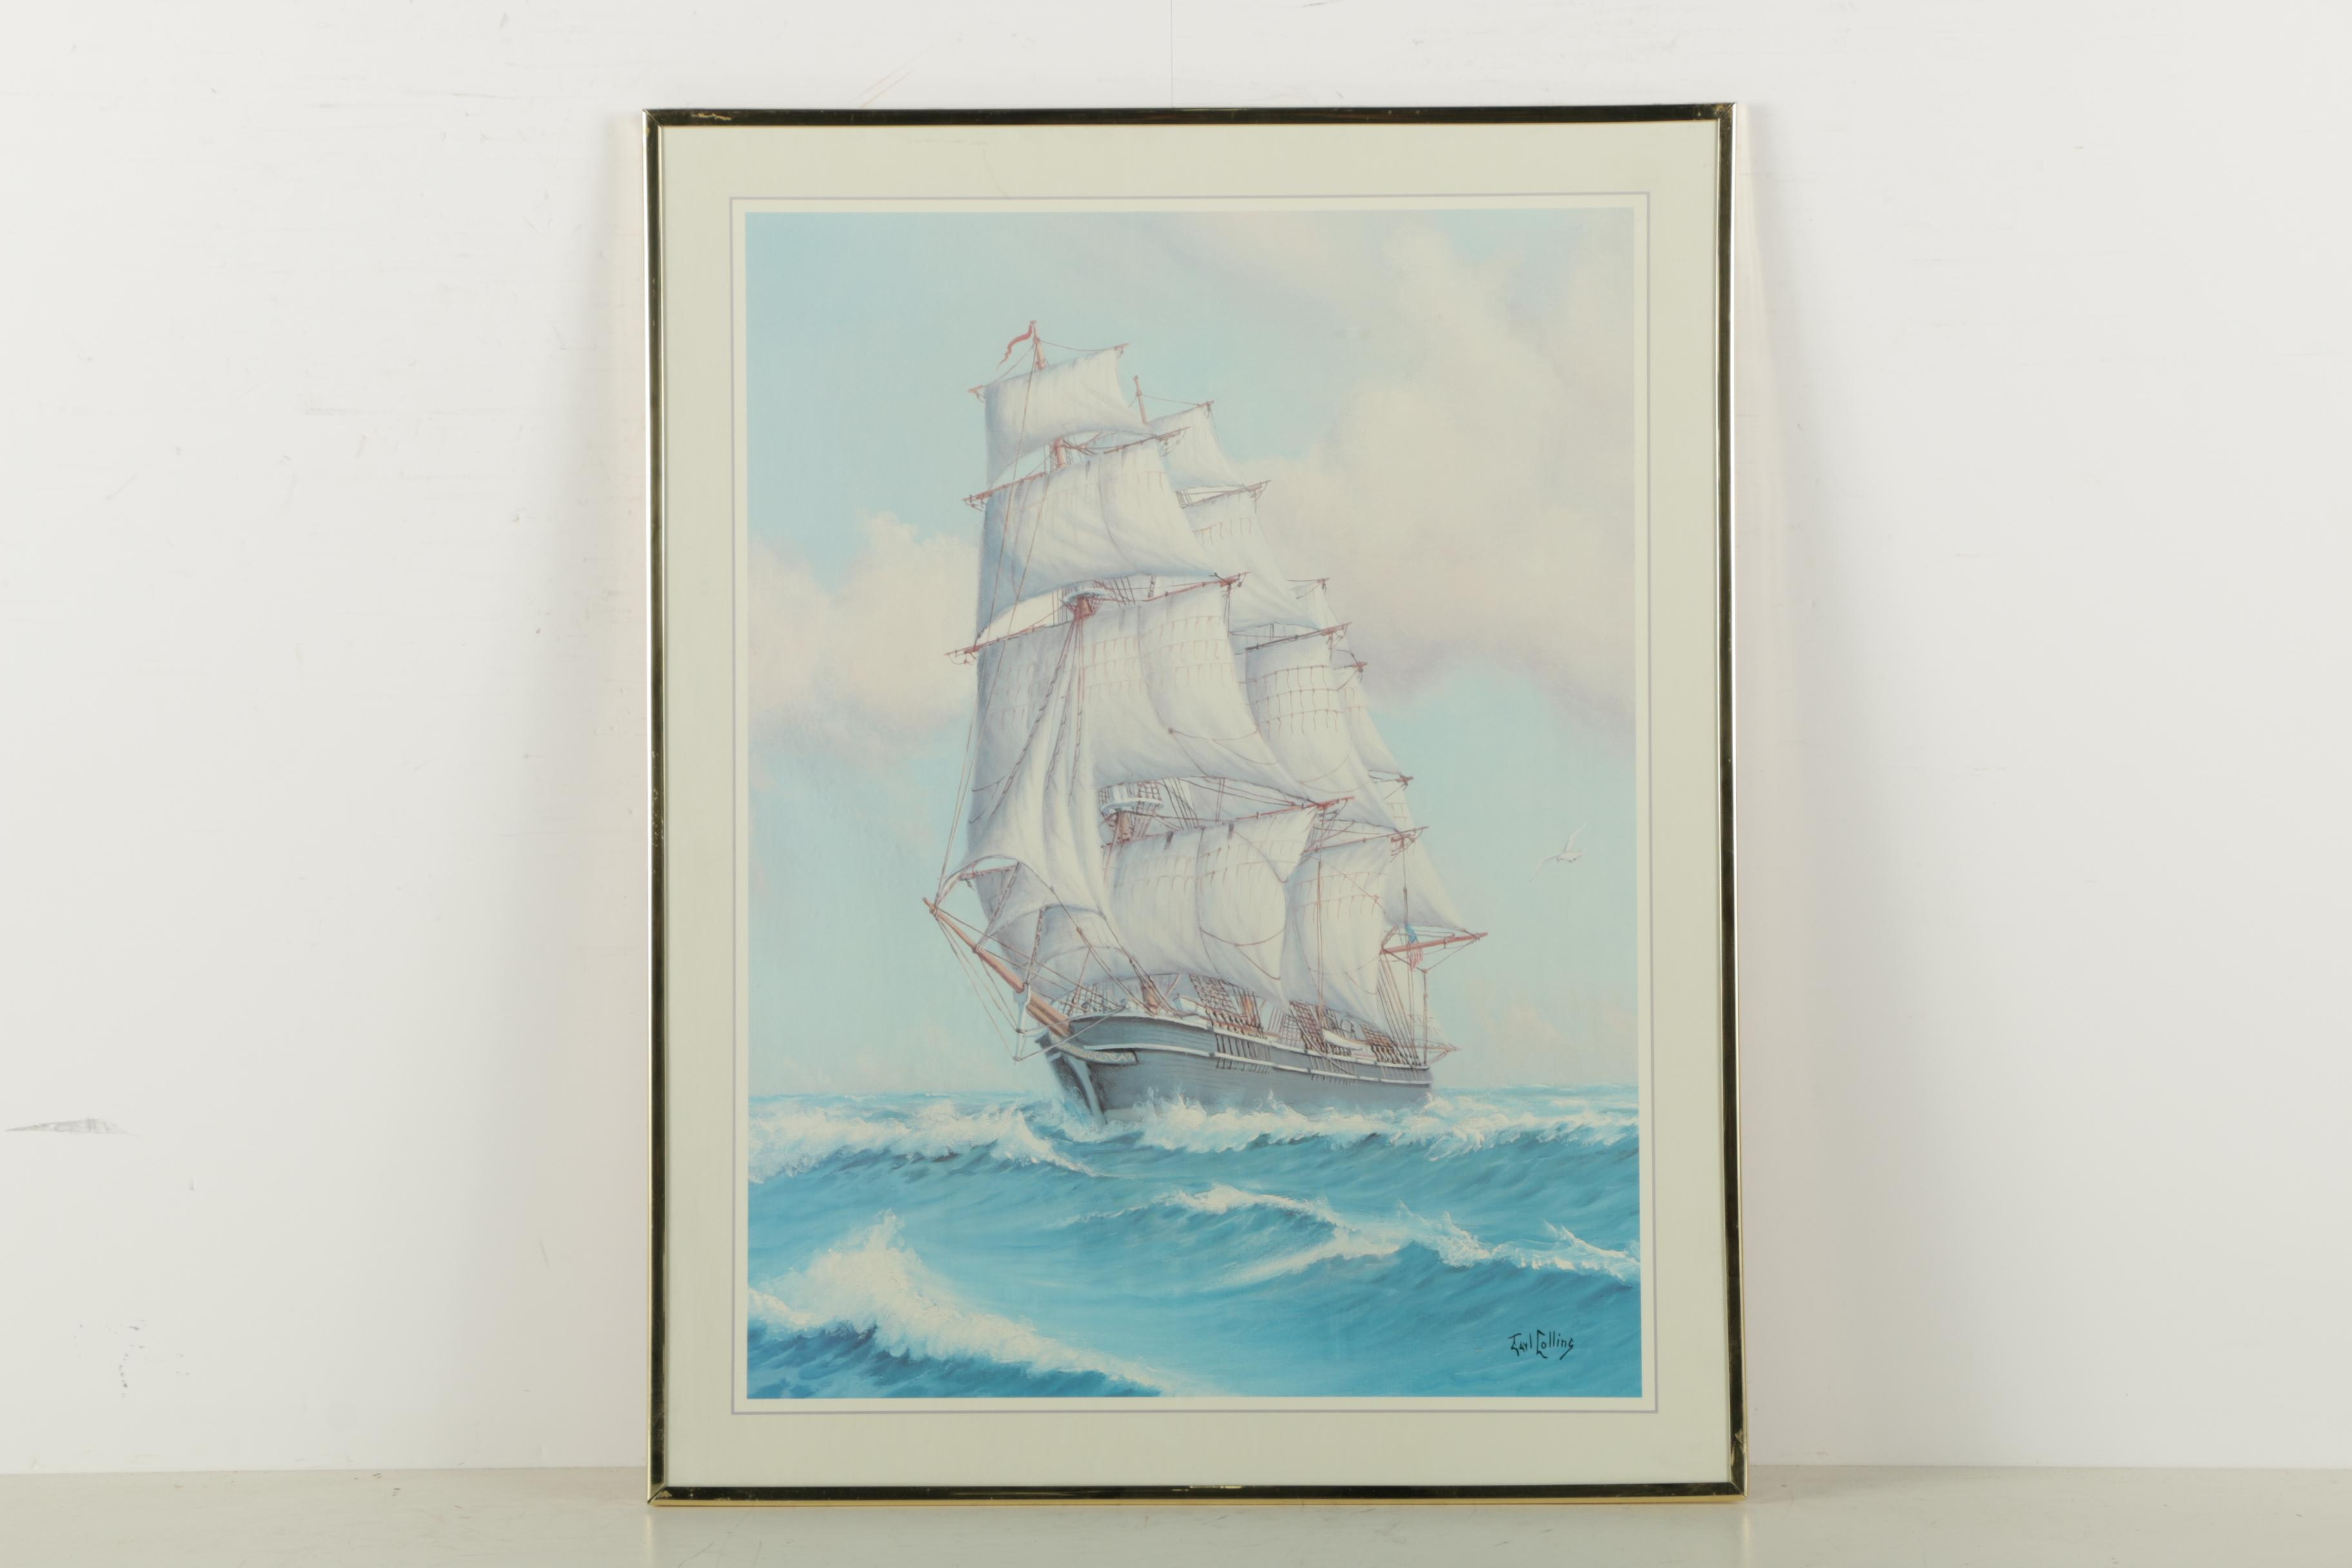 Signed Offset Lithograph of a Ship at Sail